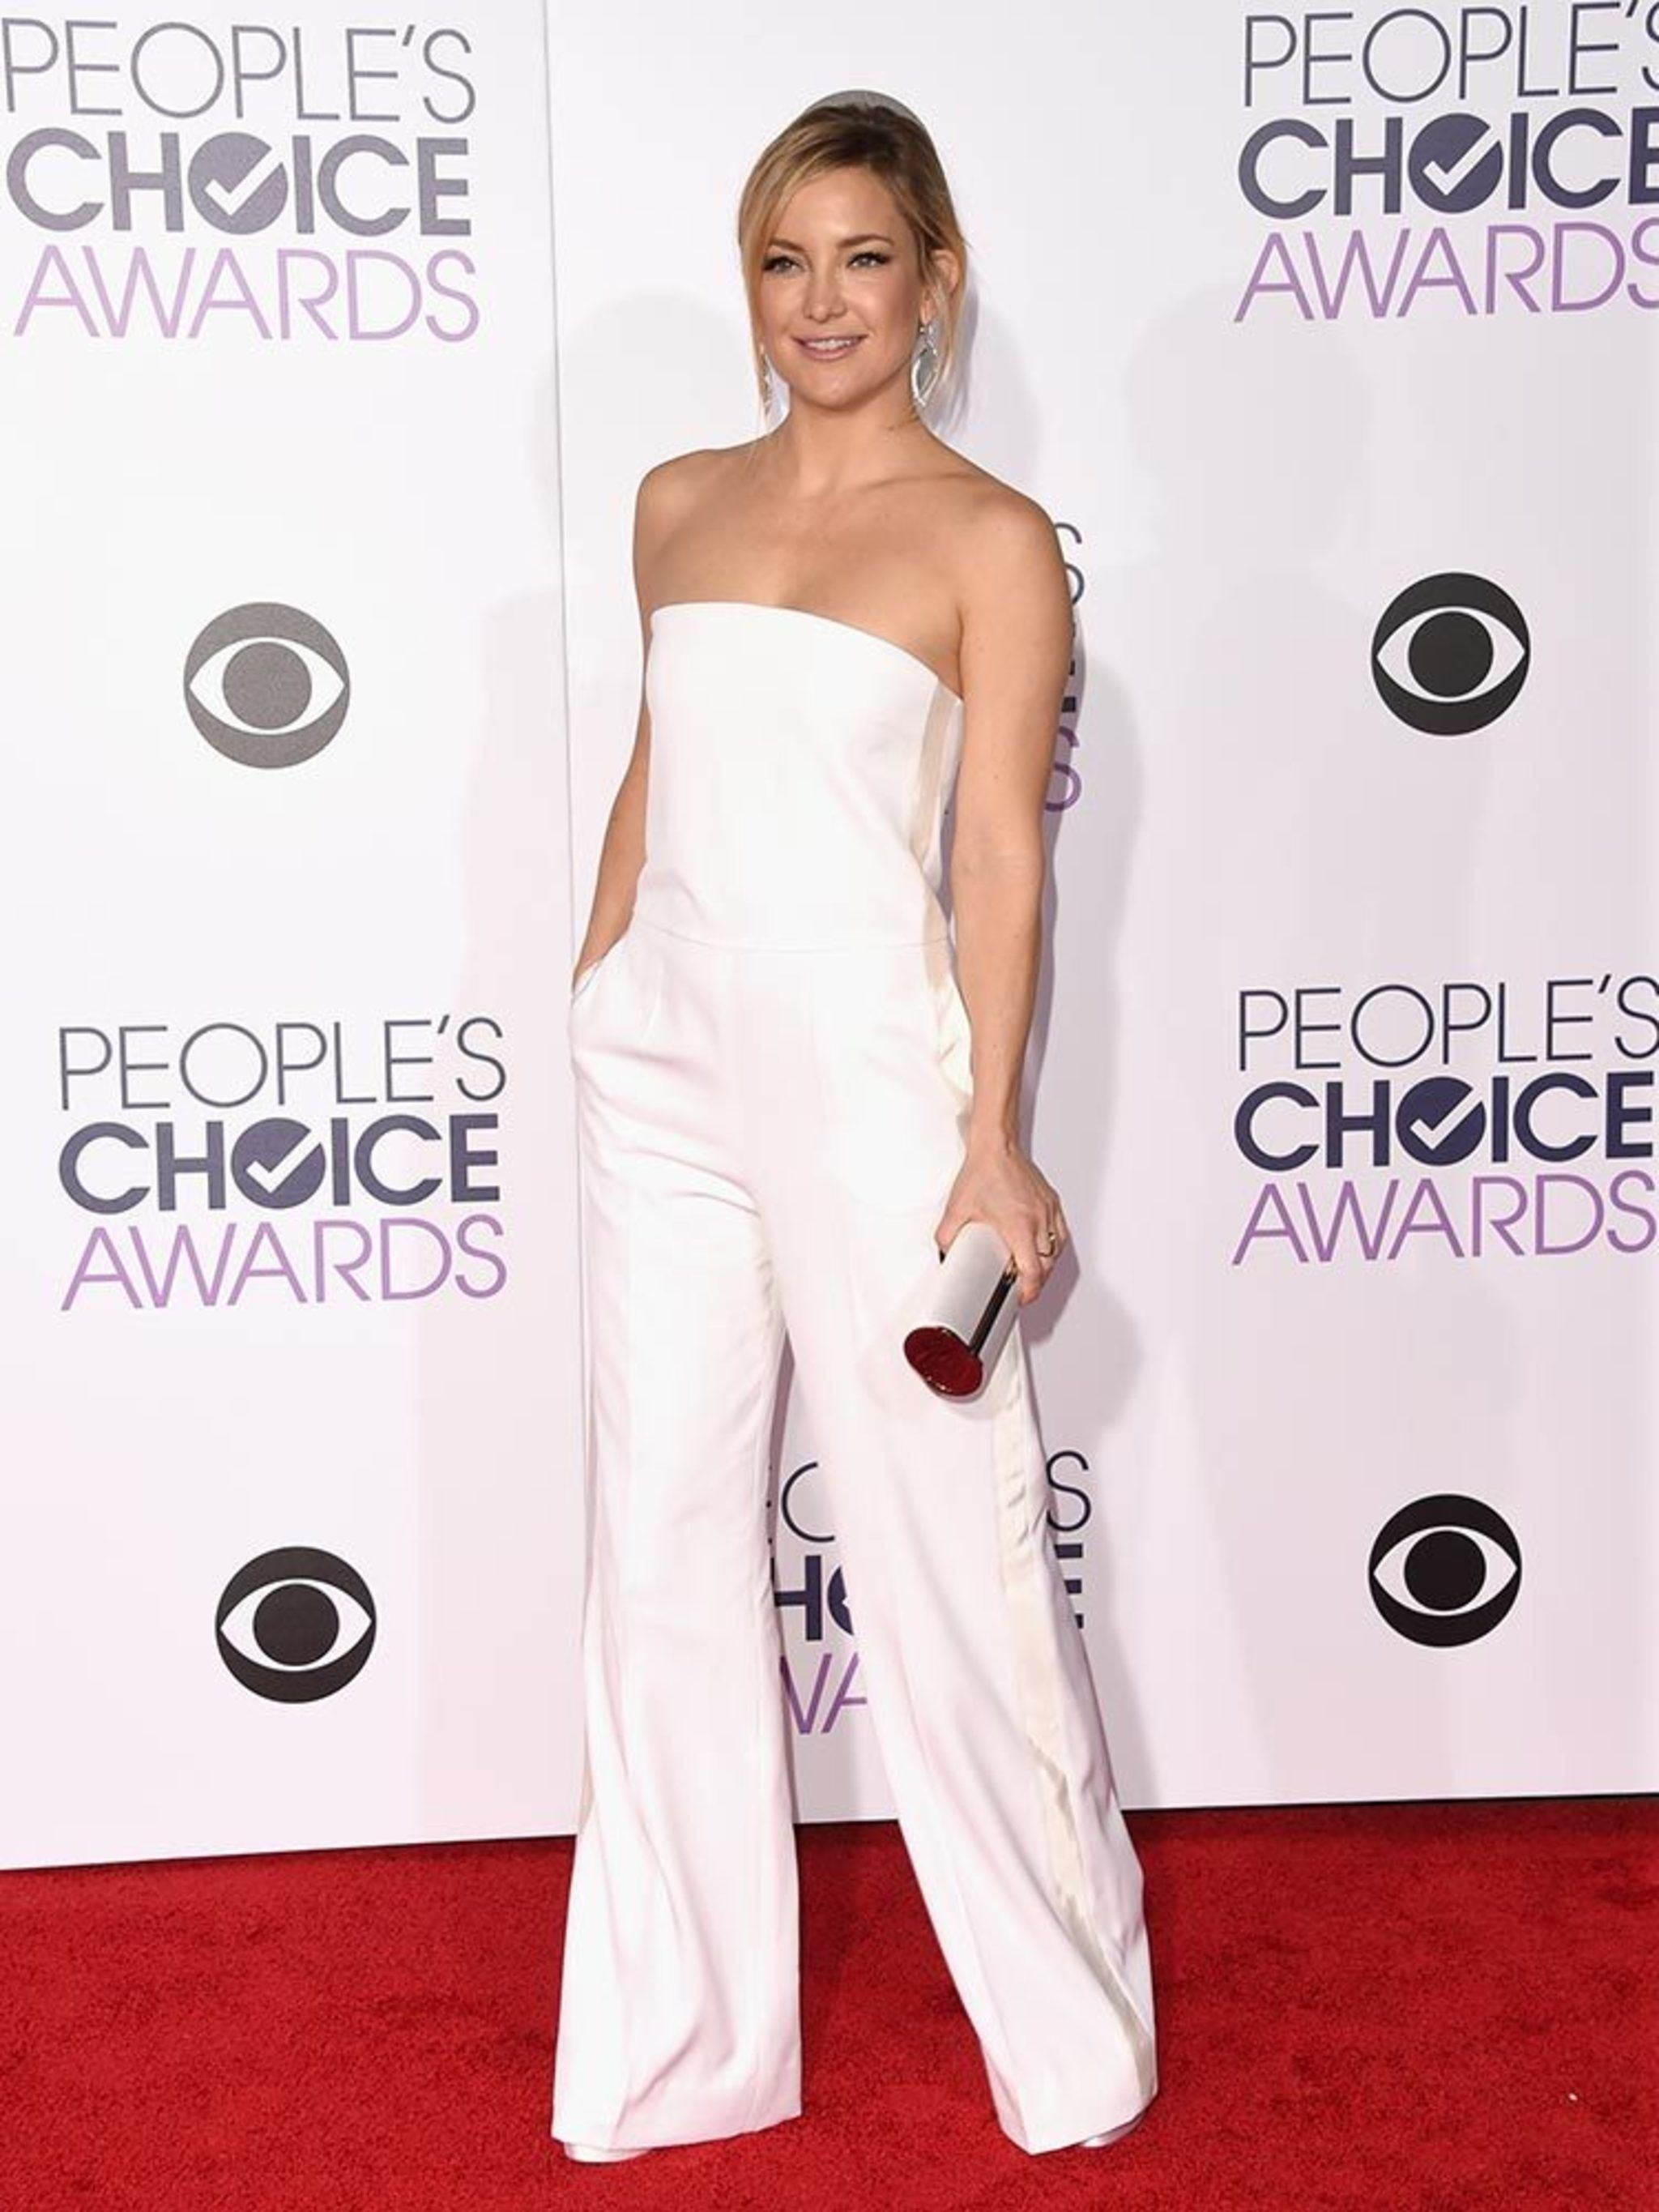 To acquire Choice peoples awards red carpet picture trends